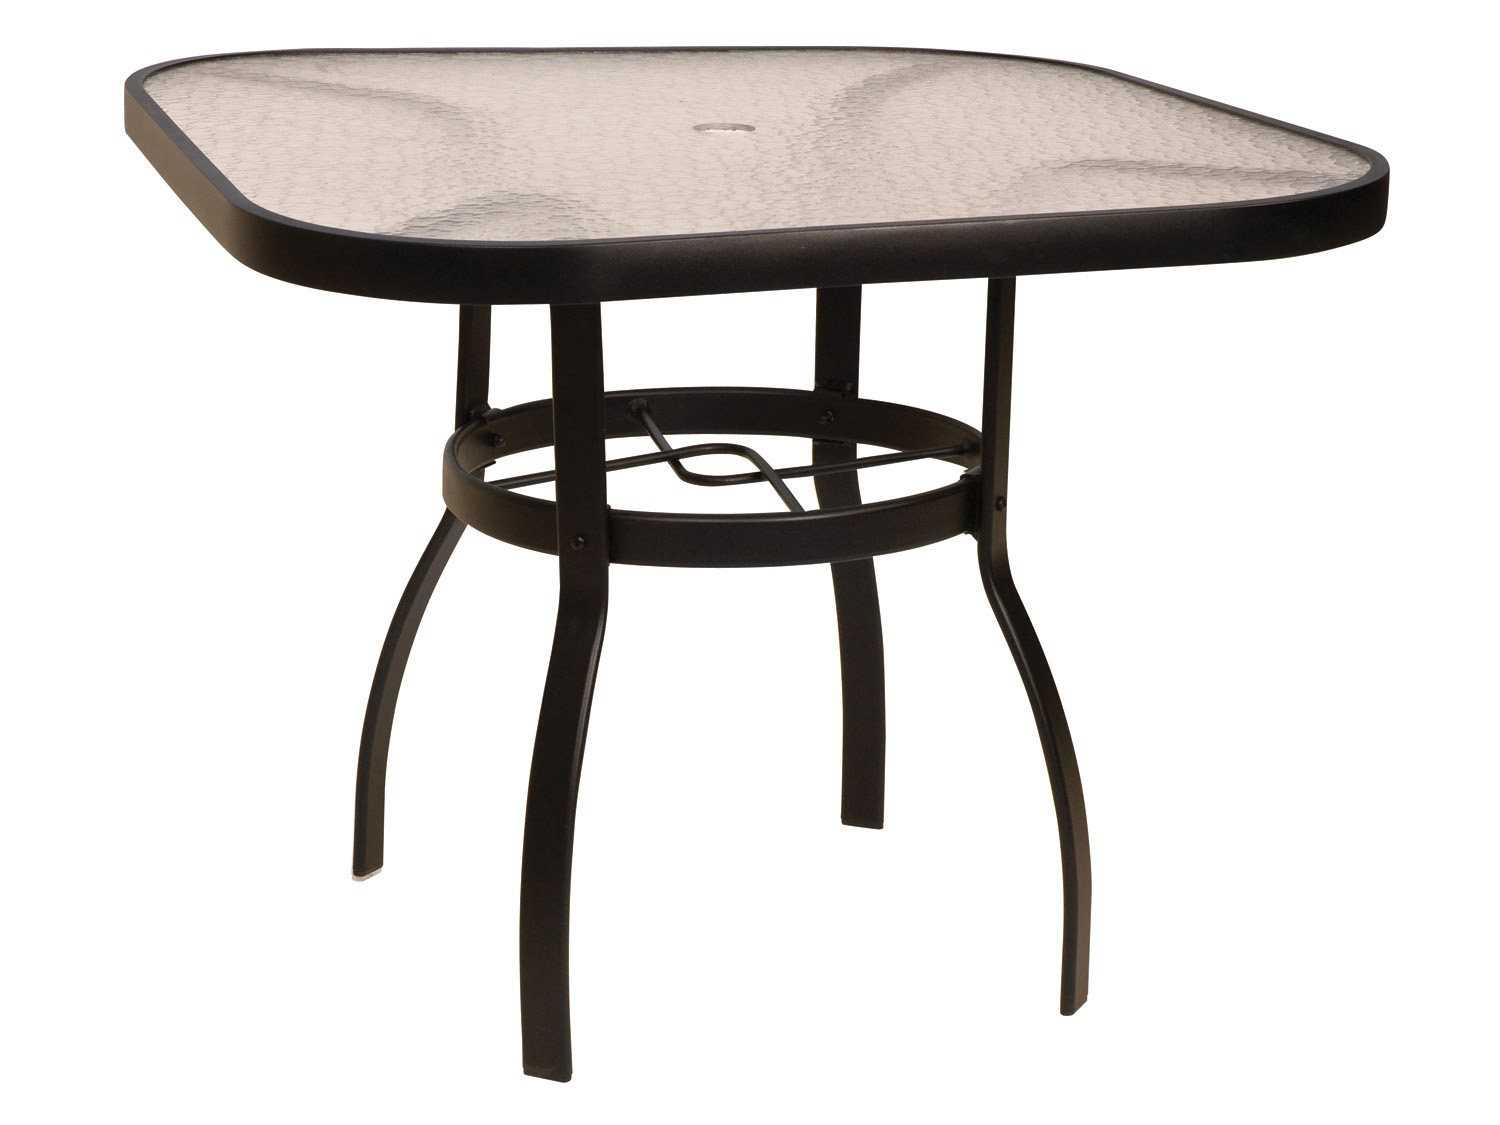 woodard deluxe aluminum 36 square acrylic top table with umbrella hole 822137w. Black Bedroom Furniture Sets. Home Design Ideas